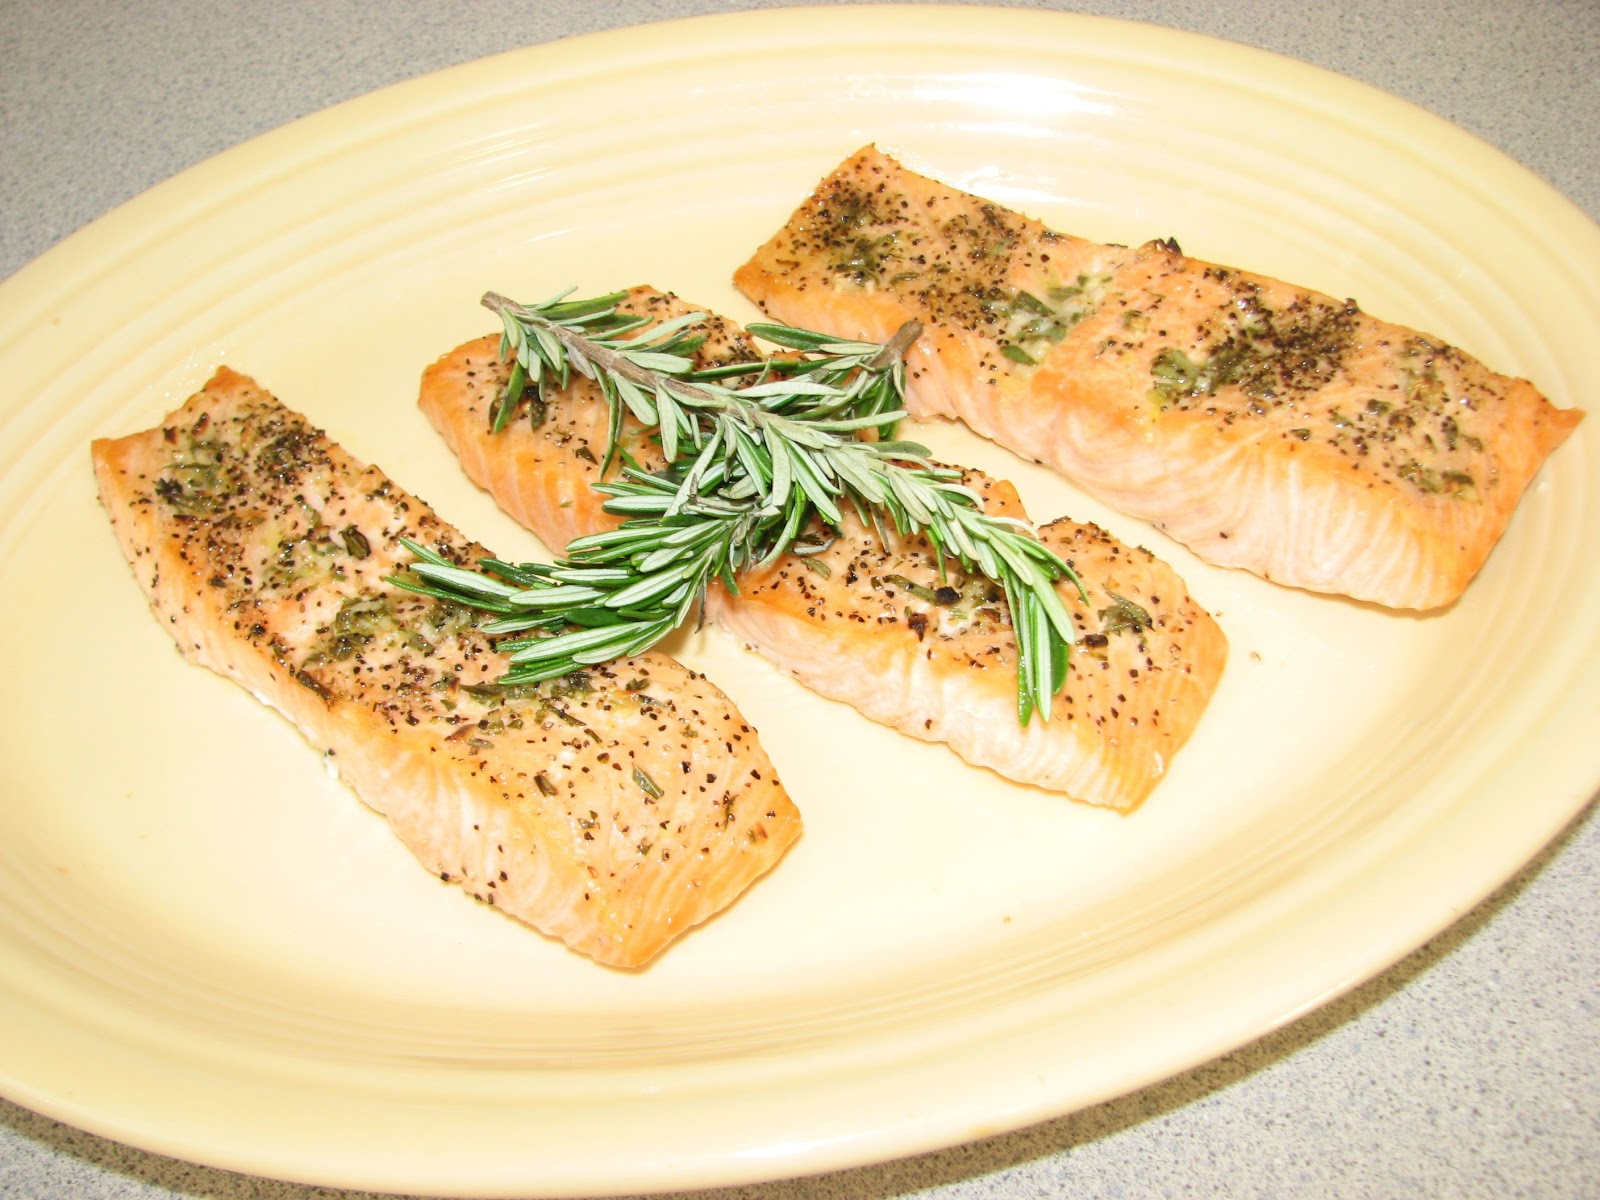 Shel's Kitchen: Broiled Salmon with Rosemary